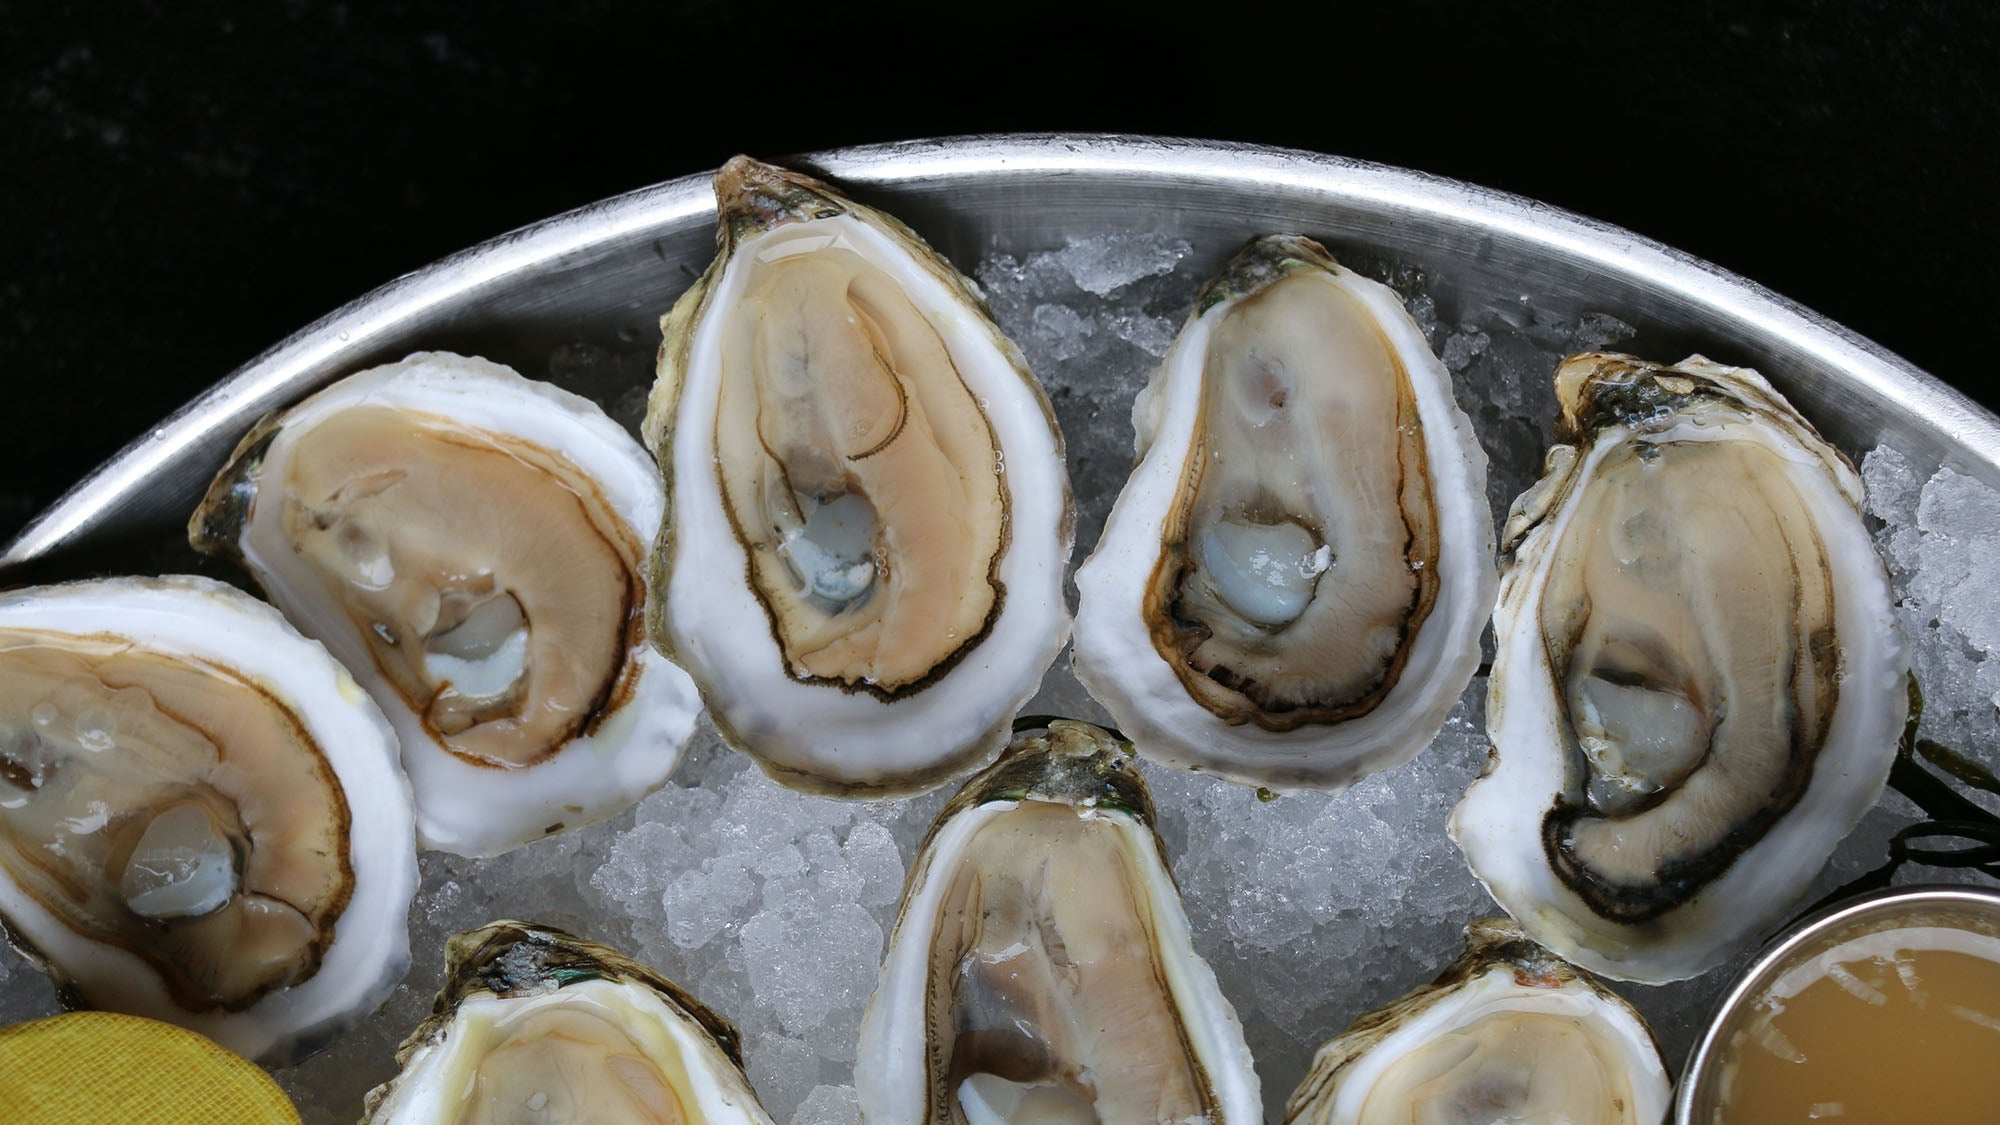 Where to find $1 oyster happy hour deals in Boston